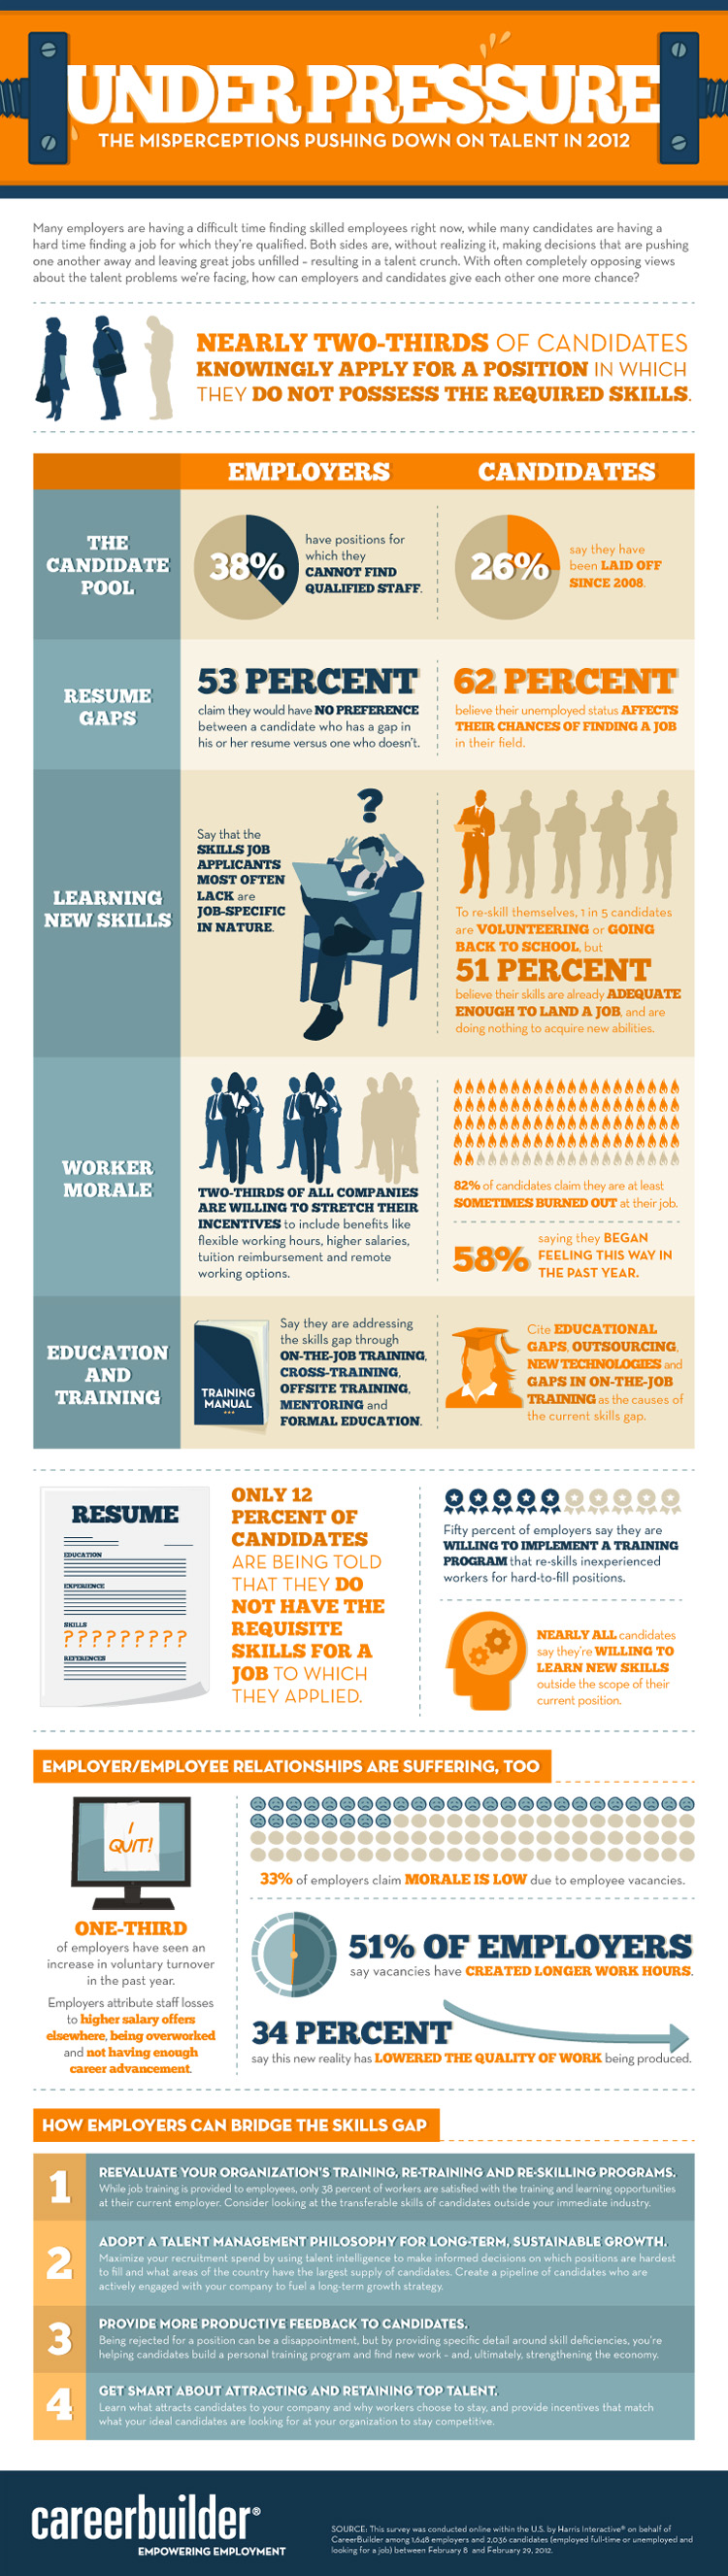 2012 study on the talent crunch